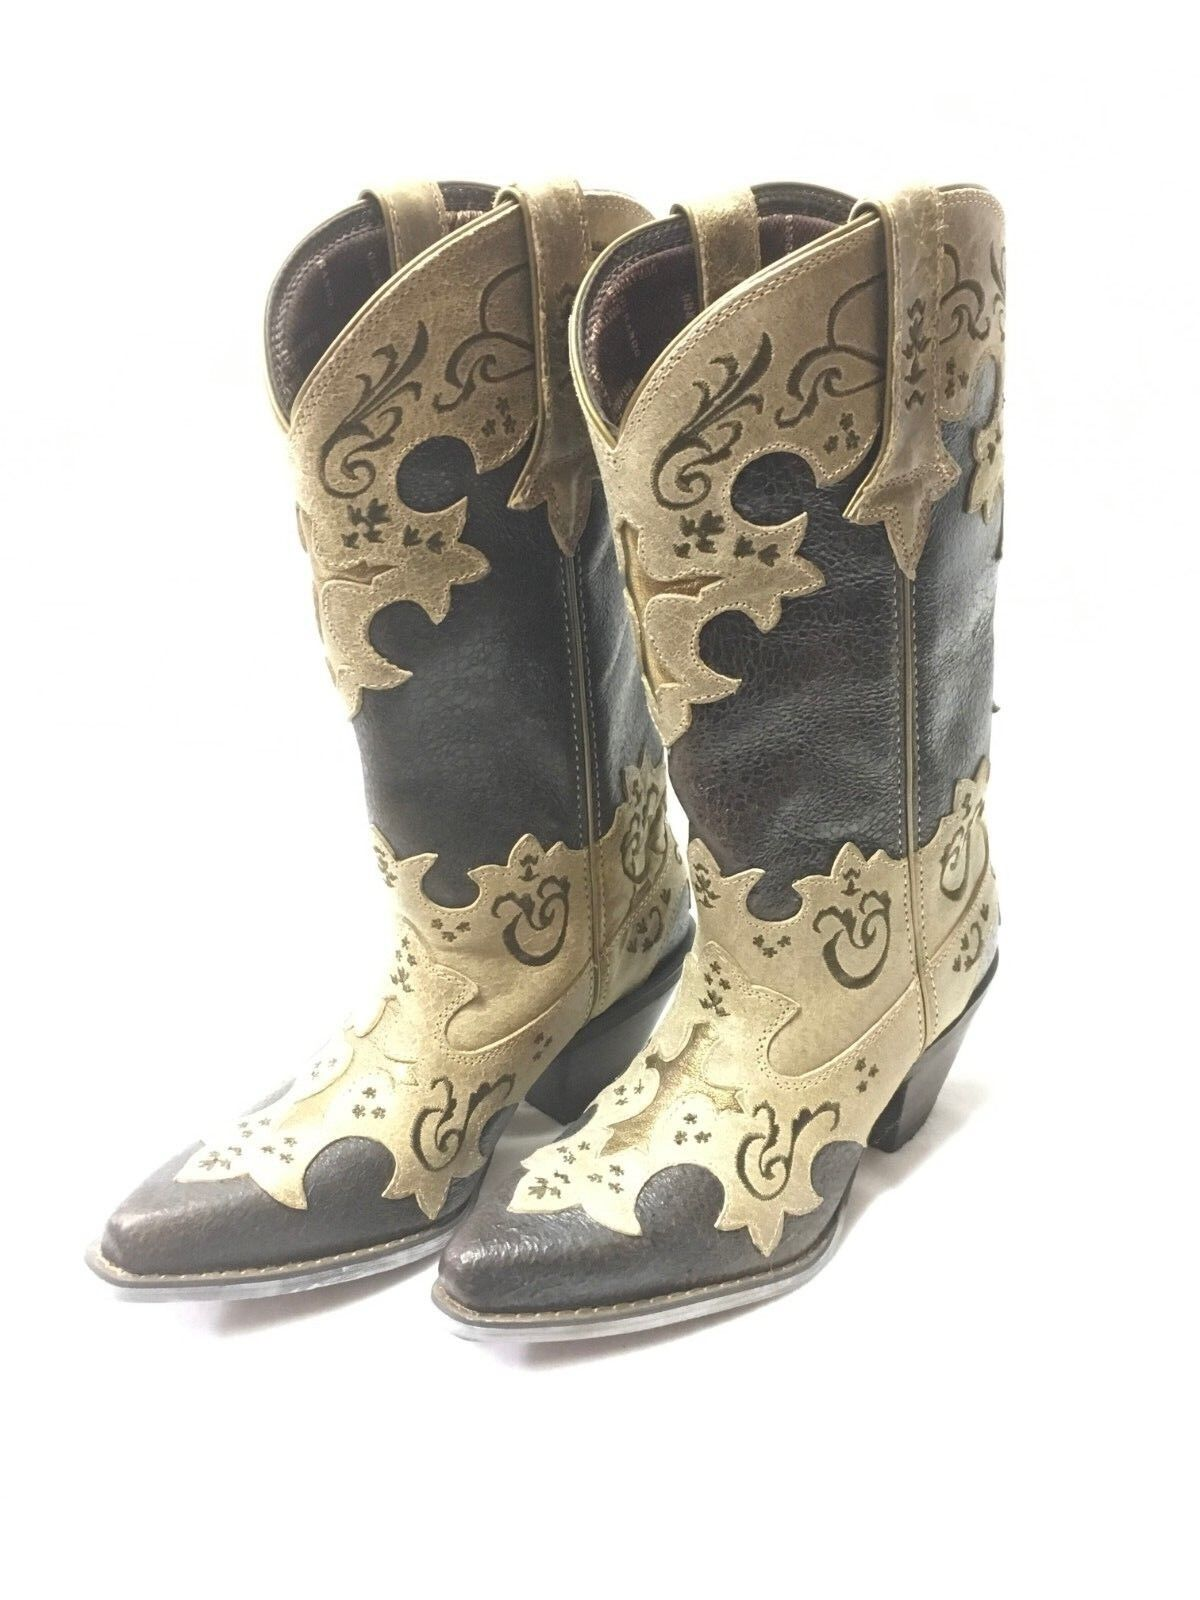 Ladies Crush by Durango Cross Overlay Boots-Brown w gold Cross, Style DCRD138